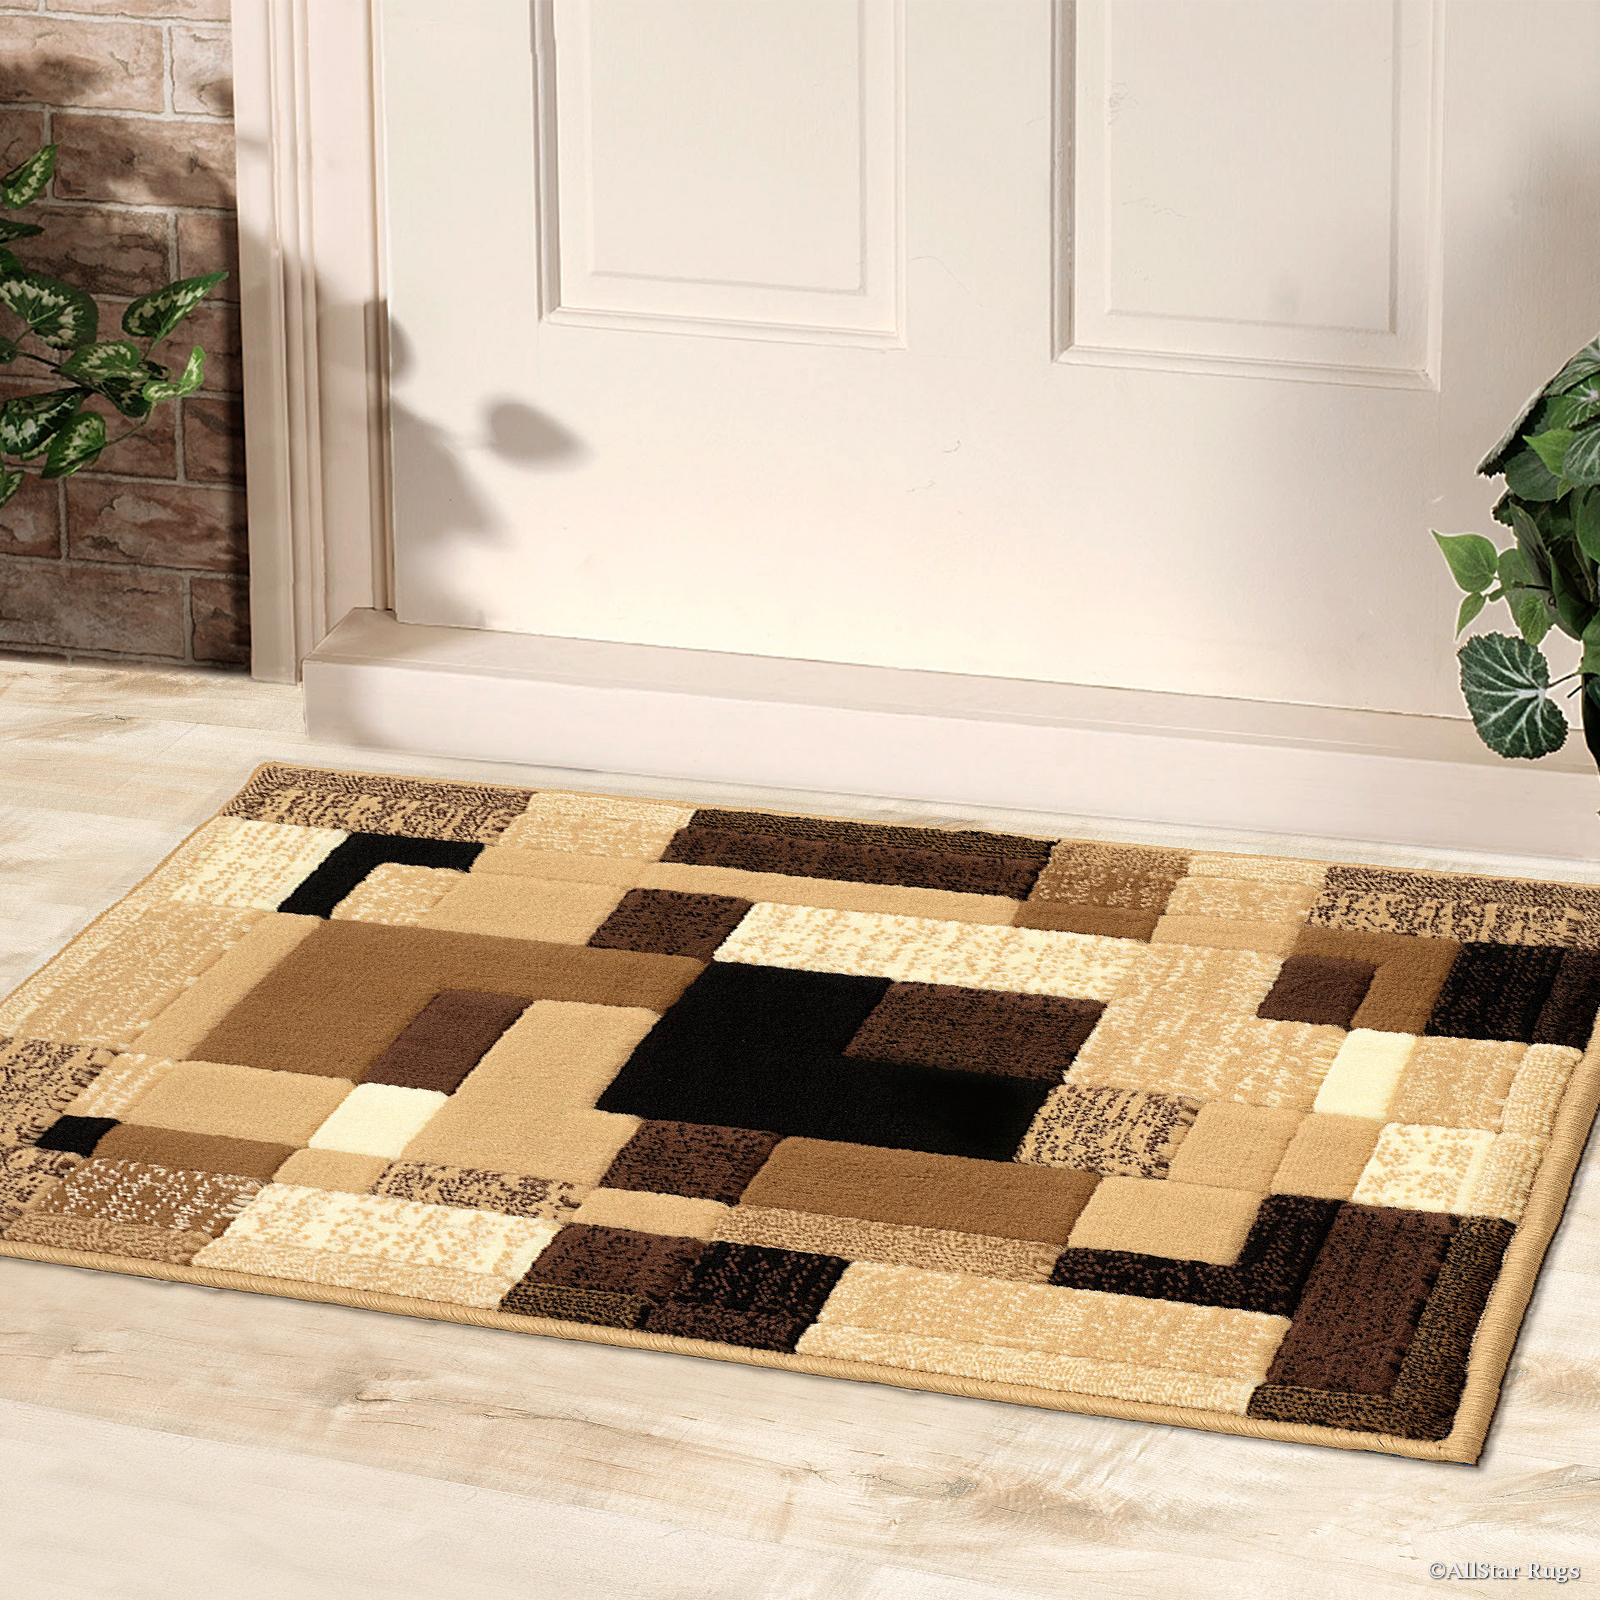 "Allstar Brown Doormat Accent Rug Modern Contemporary Casual (2' 0"" x 3' 3"") by"